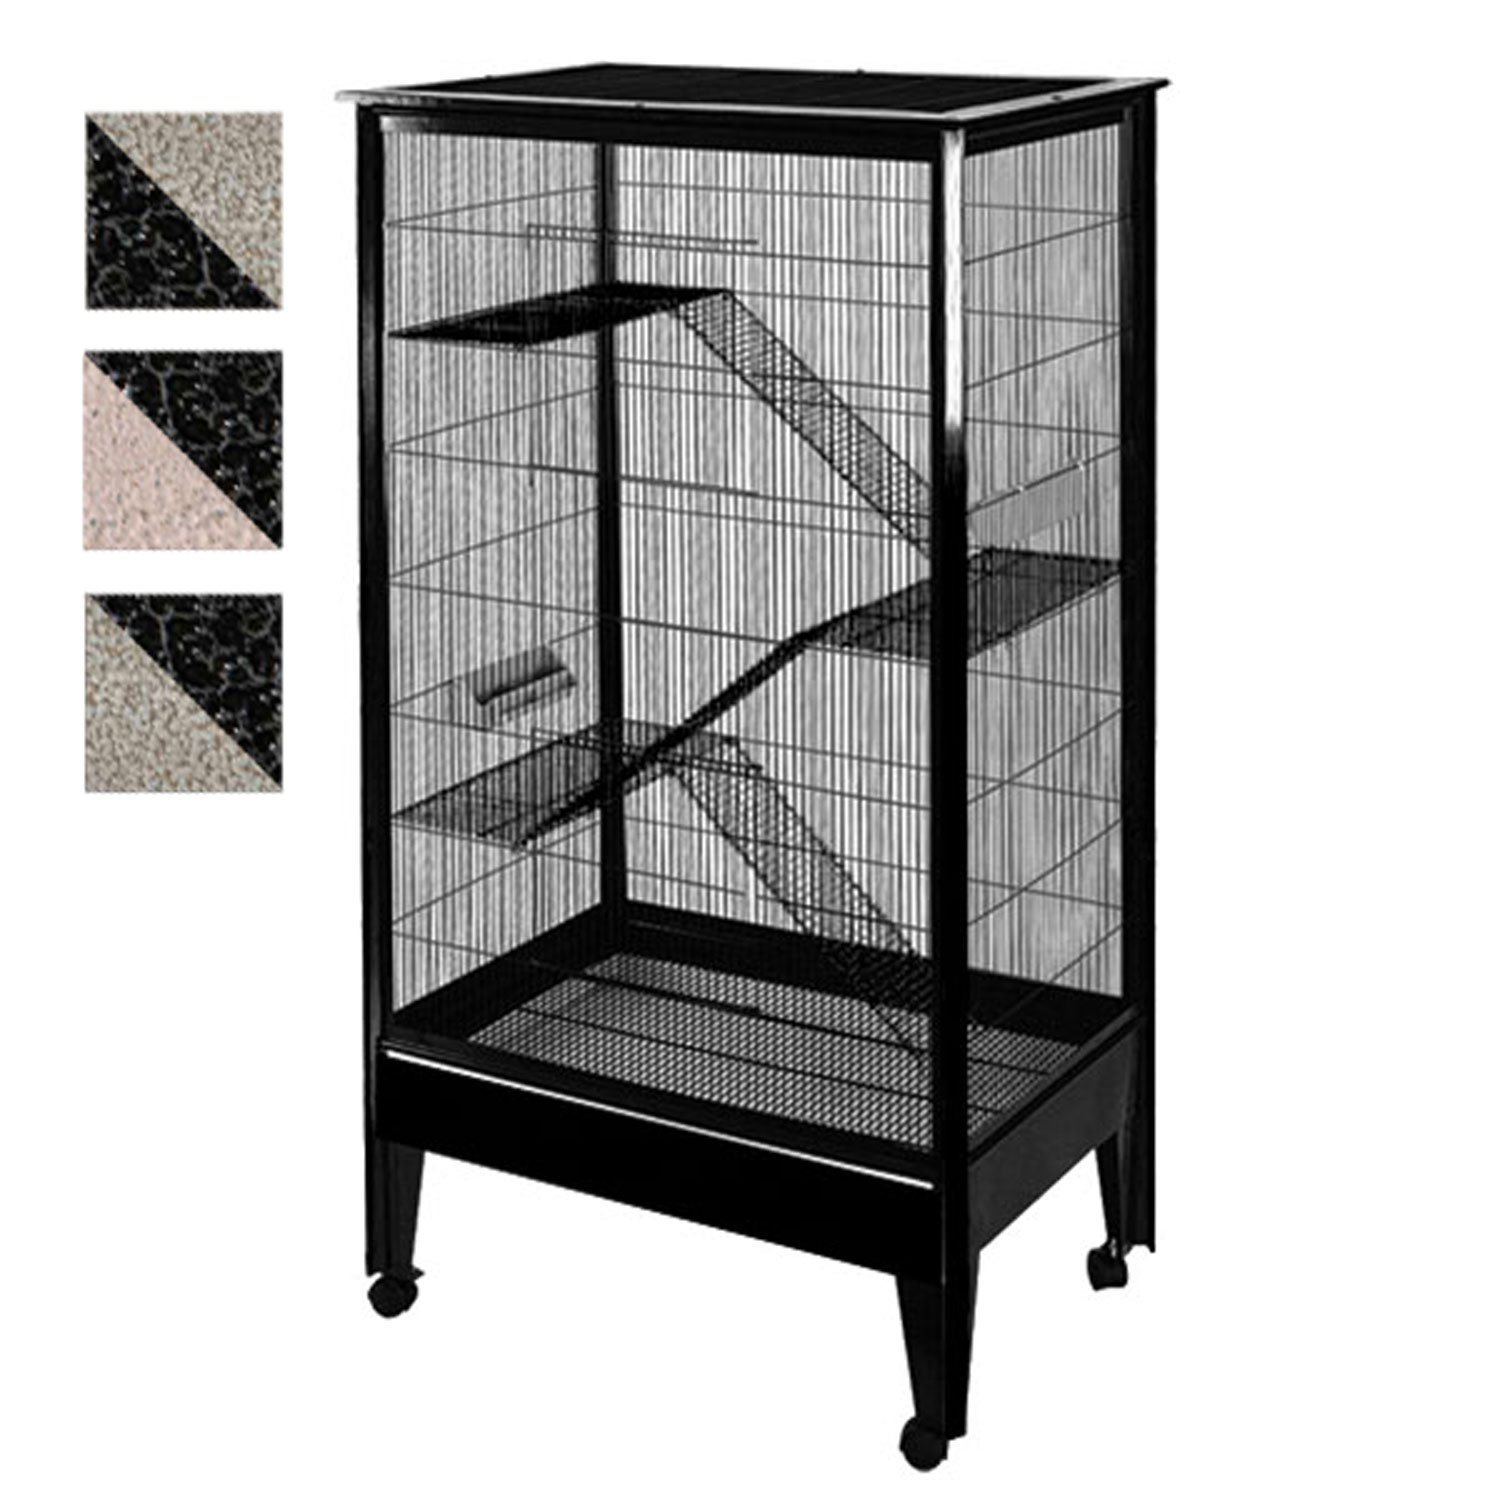 A&E Cage Company 4 Level Small Animal Cage On Casters In